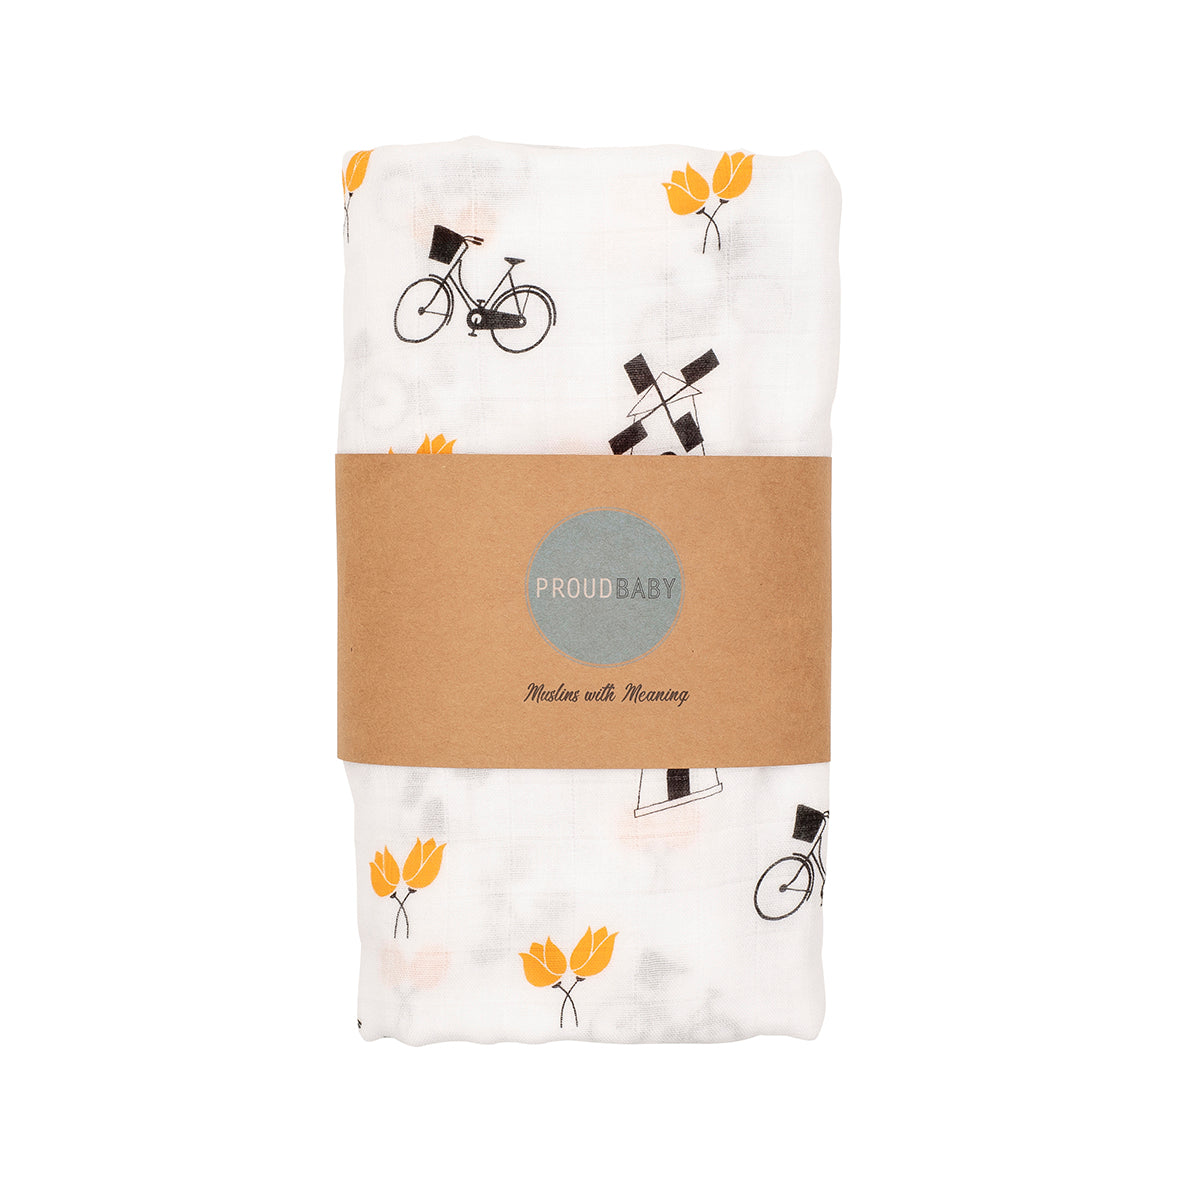 Holland Netherlands baby muslin swaddle gift